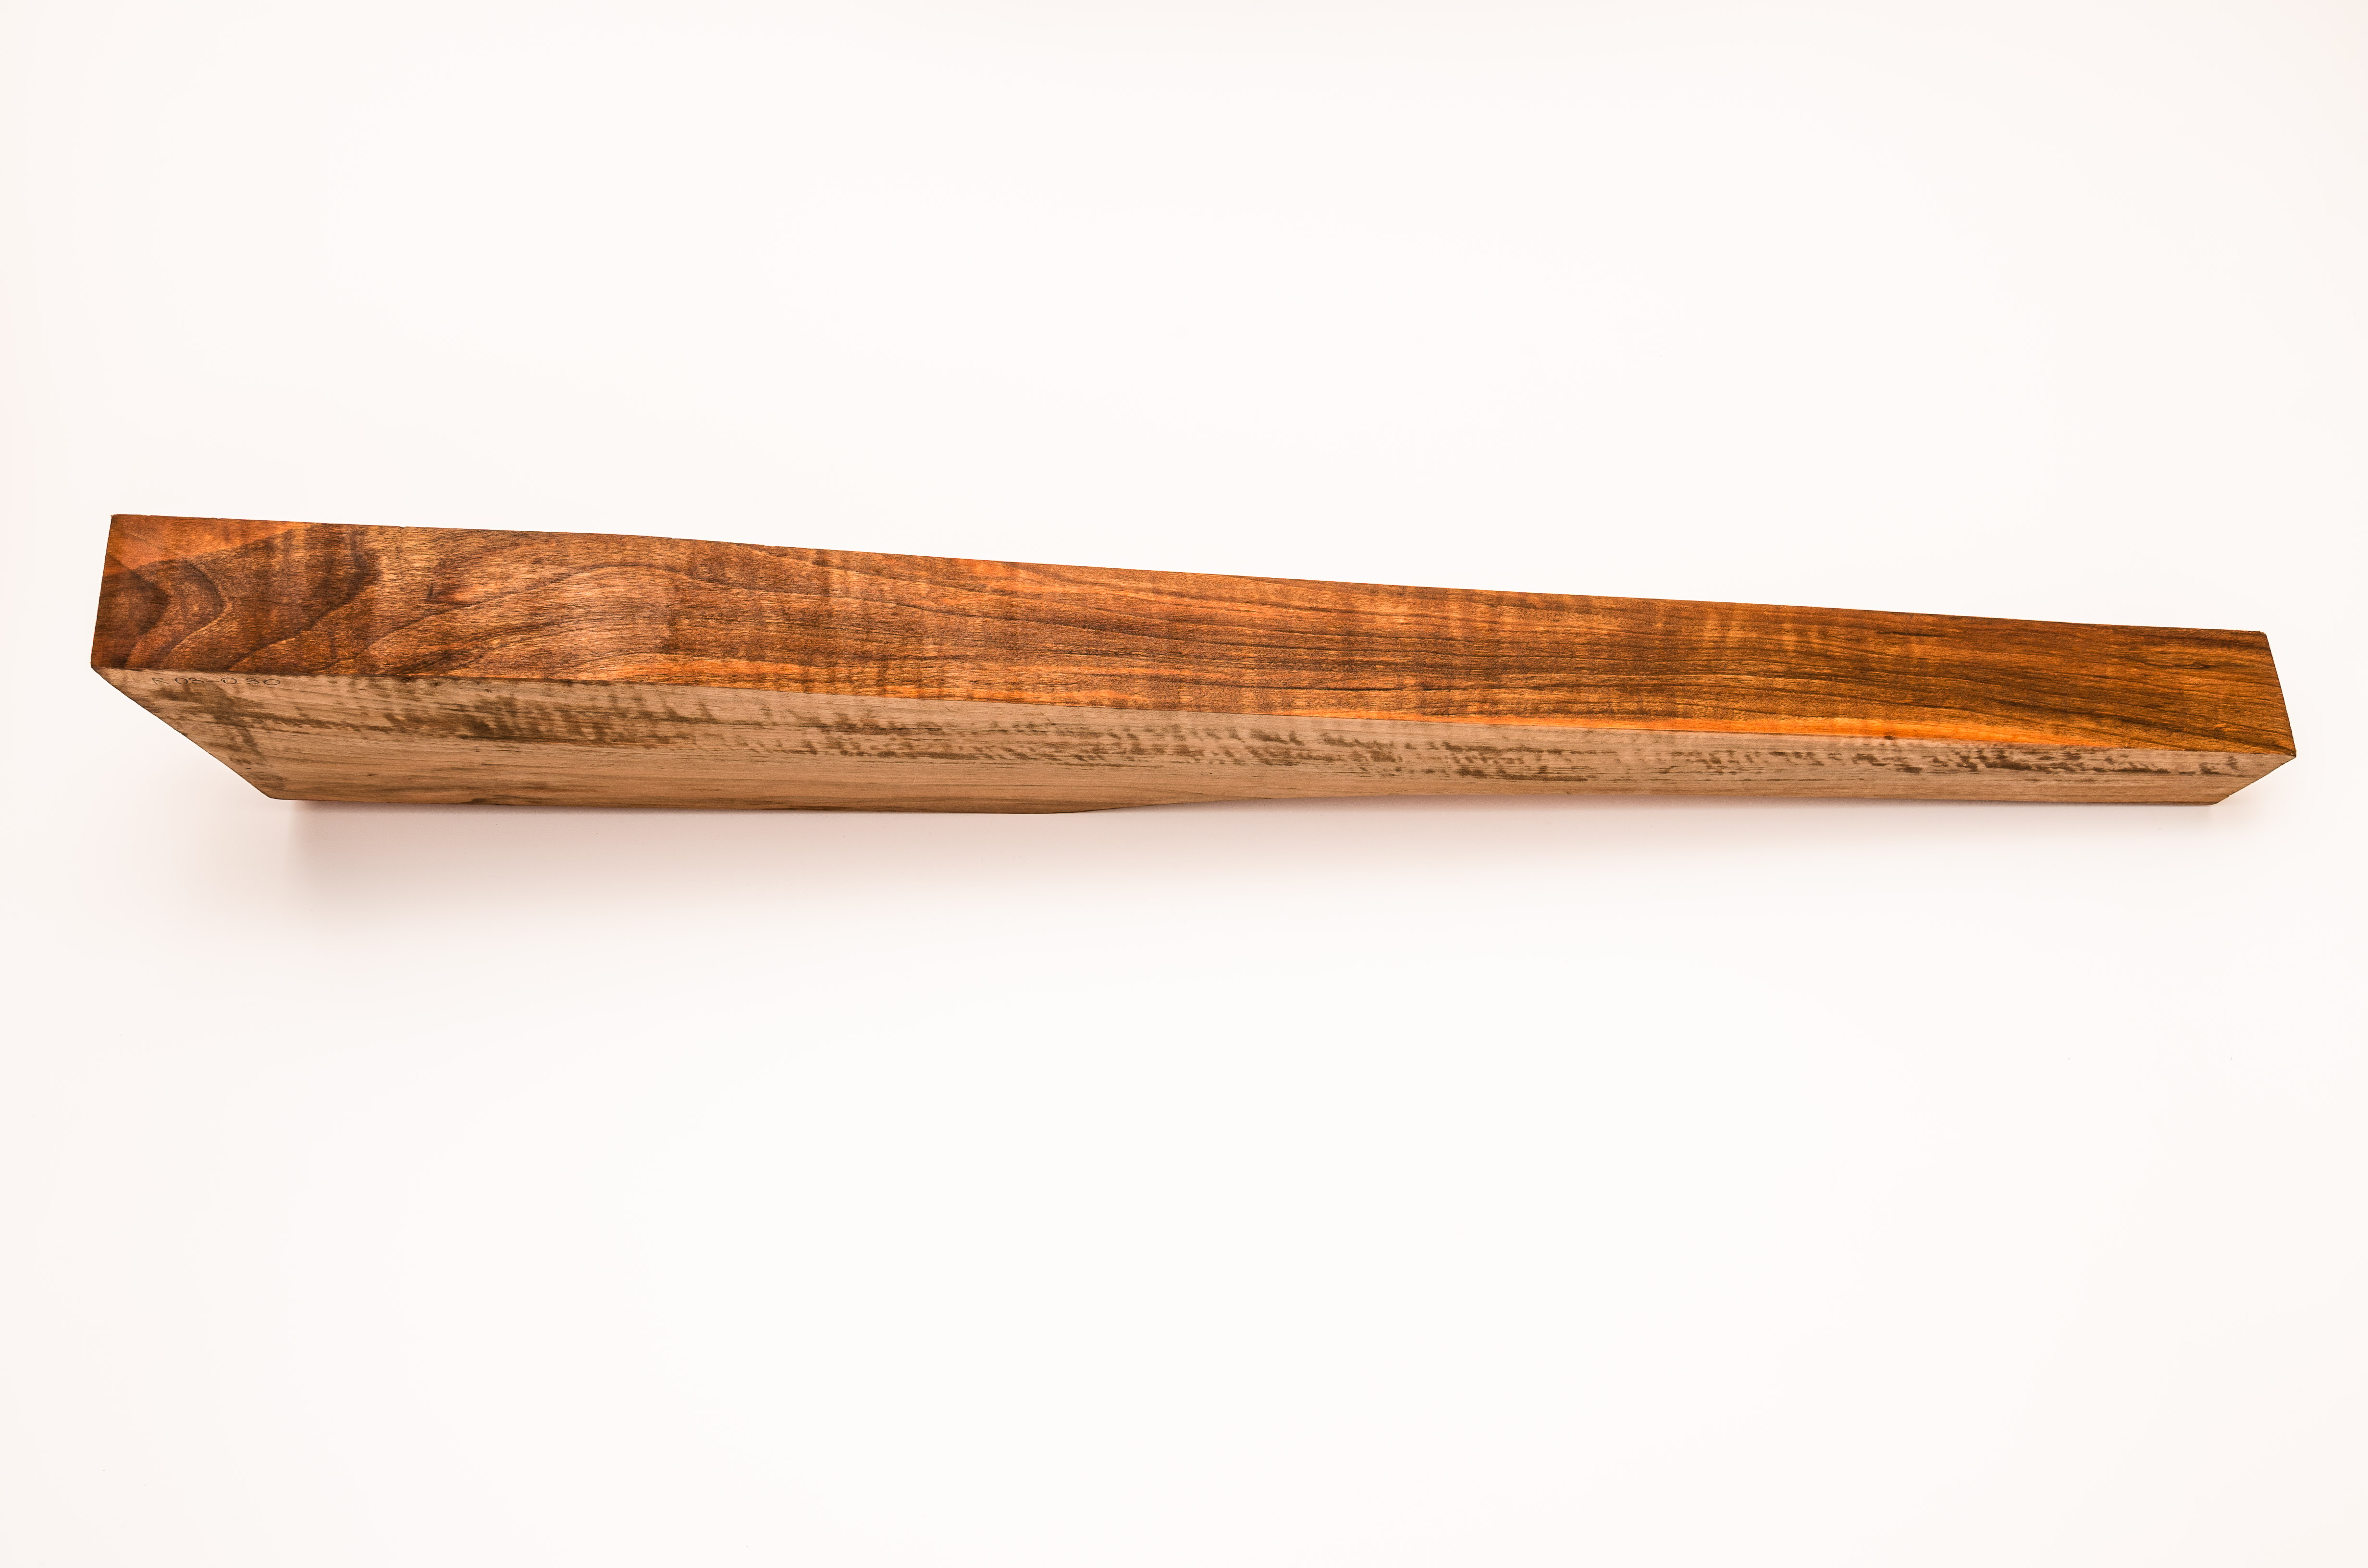 walnut_stock_blanks_for_guns_and_rifles-1081